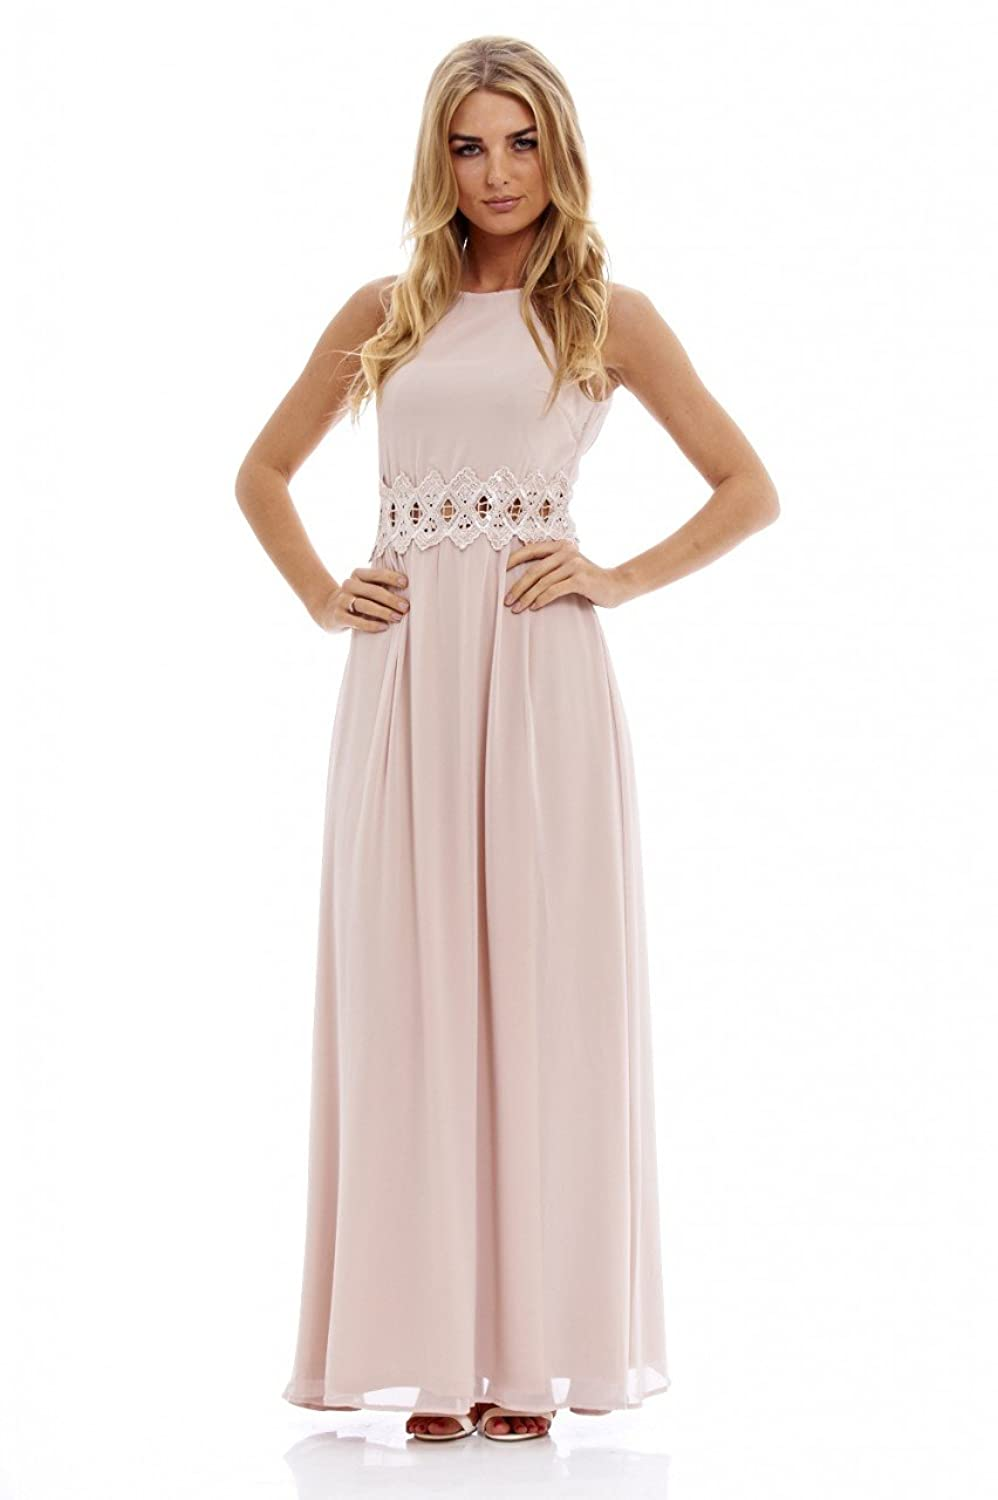 c329ef6e35 This gorgeous and fresh for this season chiffon skirt with sequin  embellished cut out waist dress this style suits all shapes and sizes with  its sleeveless ...